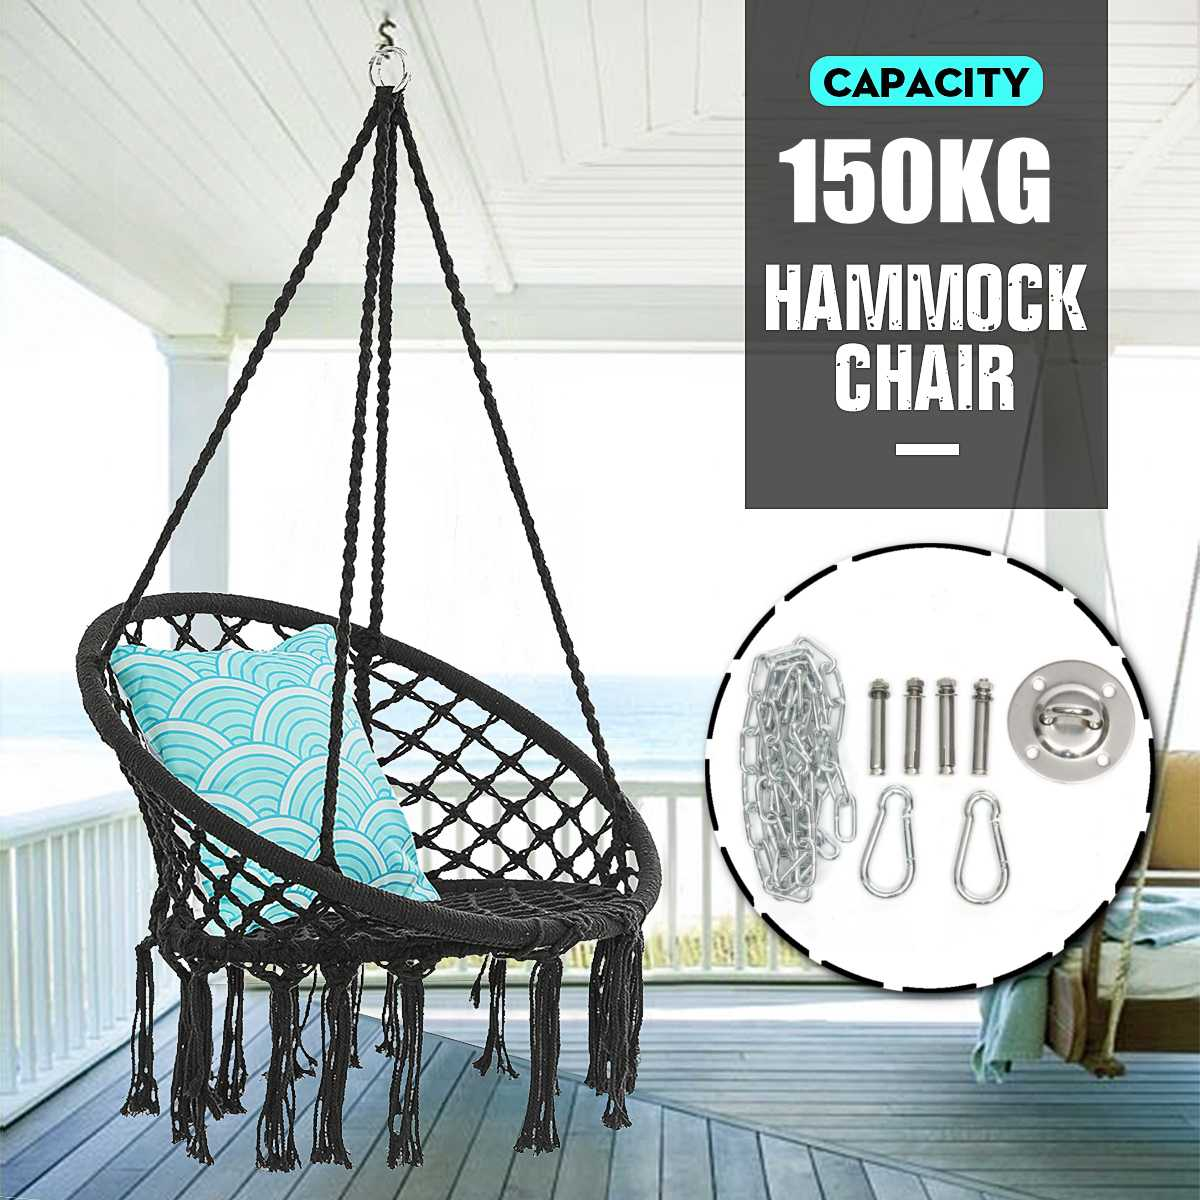 150kg Nordic Round Hammock Chair Handmade Knitted Indoor Outdoor Swing Bed Kids Adult Hanging Chair Hammock With Metal Aliexpress